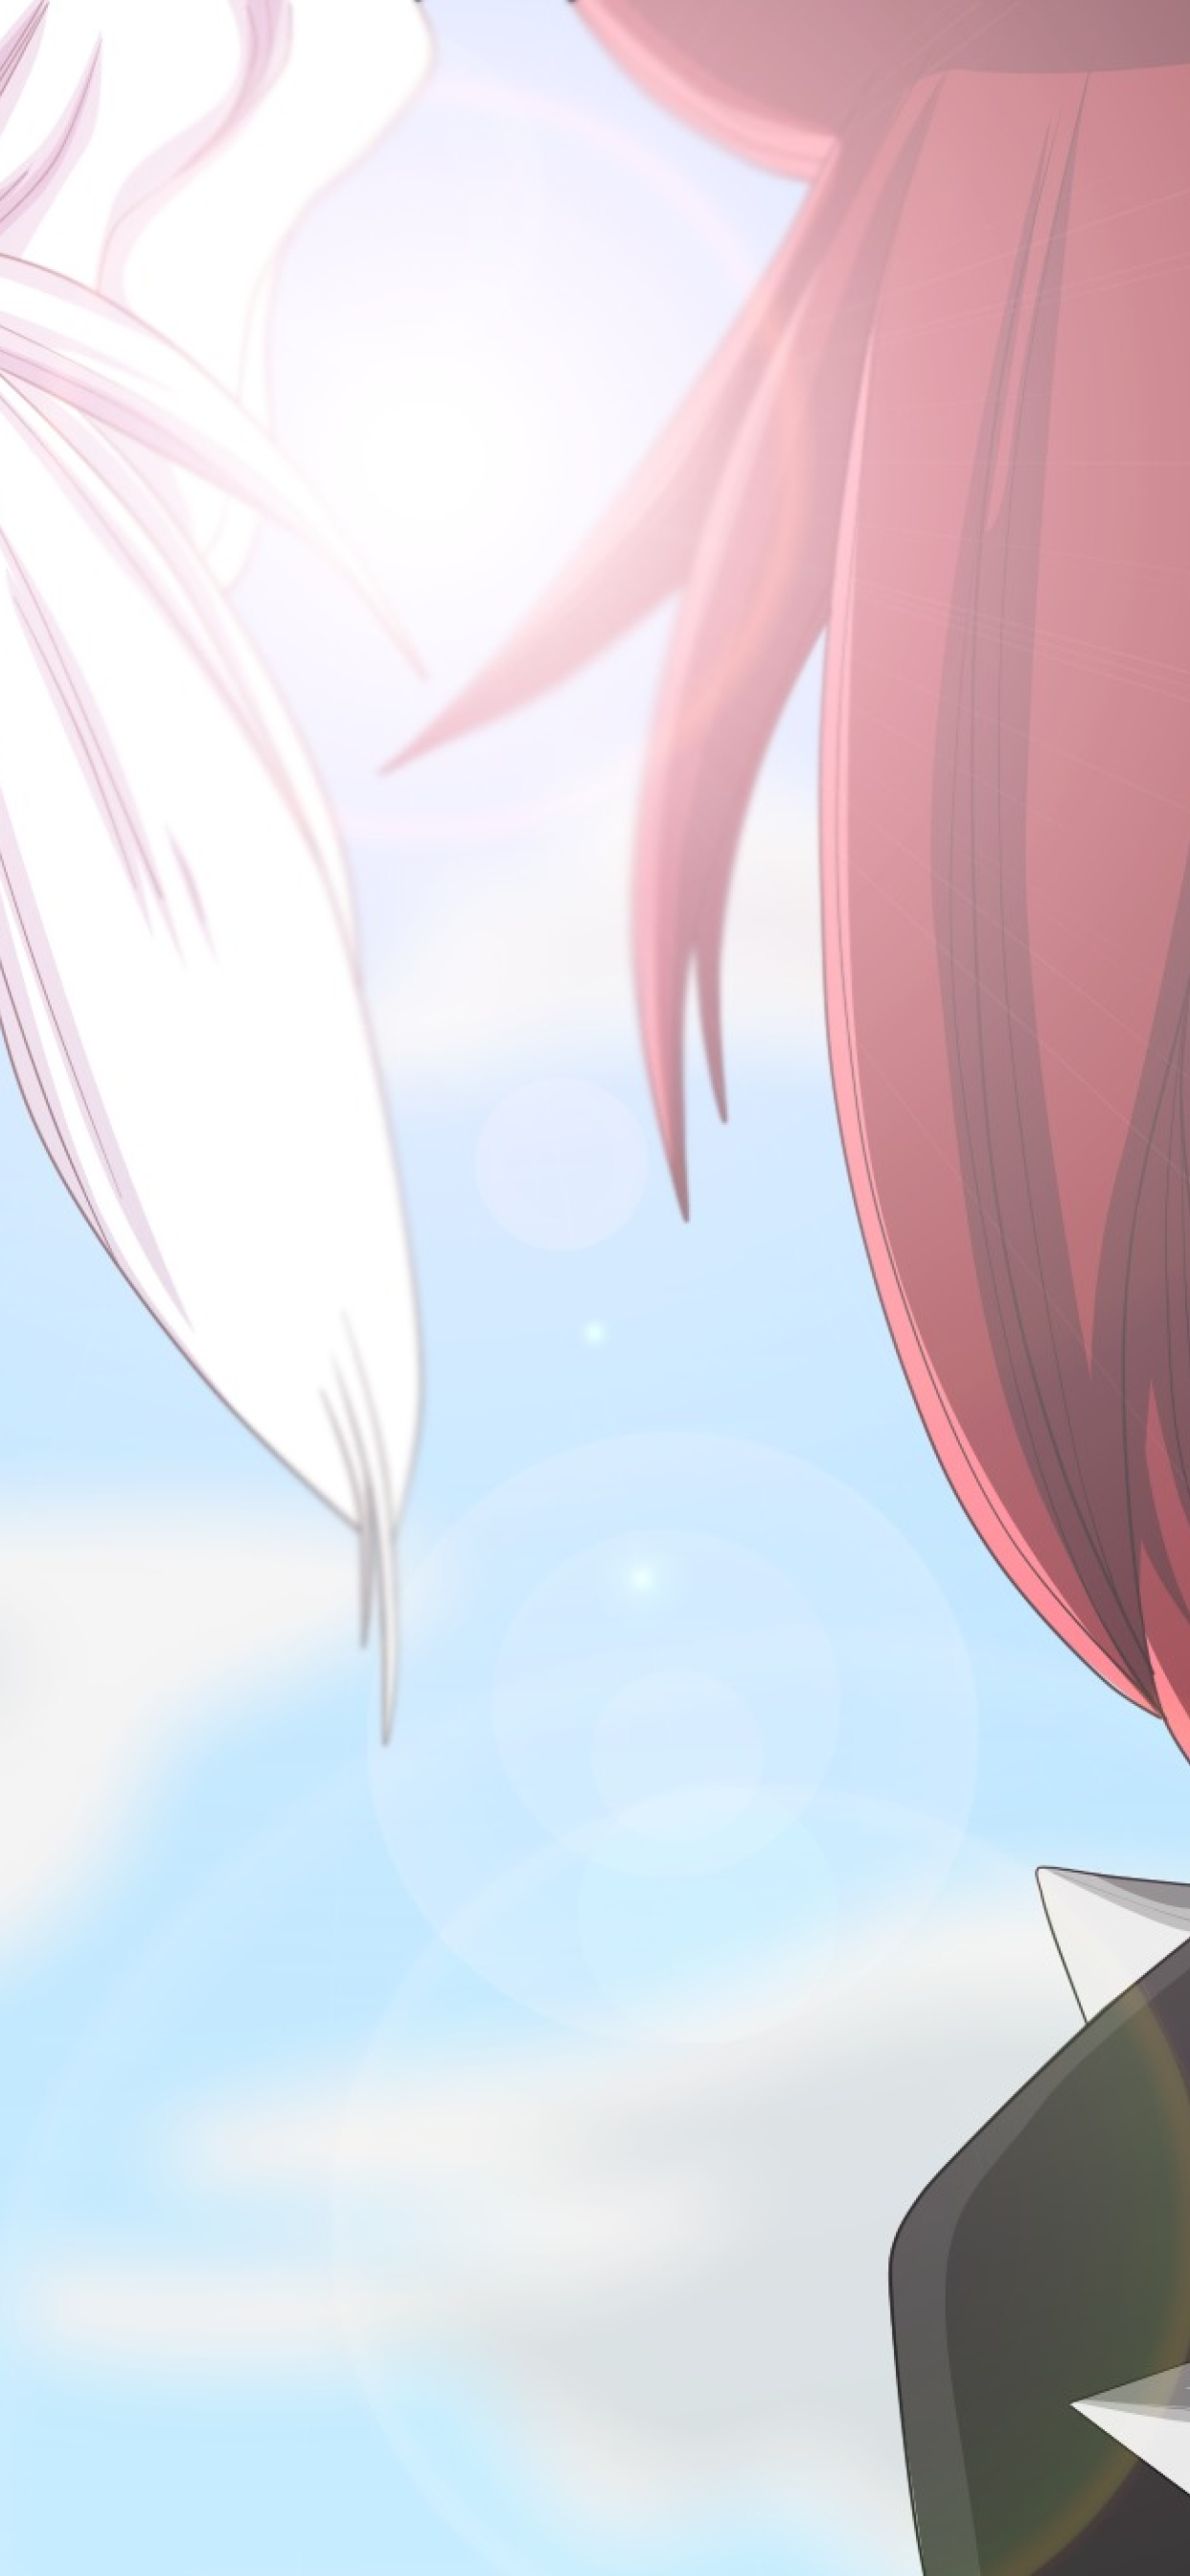 1242x2688 Fairy Tail Erza Scarlet Mirajane Strauss Iphone Xs Max Wallpaper Hd Anime 4k Wallpapers Images Photos And Background Screen lock android key lime pie (a concept). 1242x2688 fairy tail erza scarlet